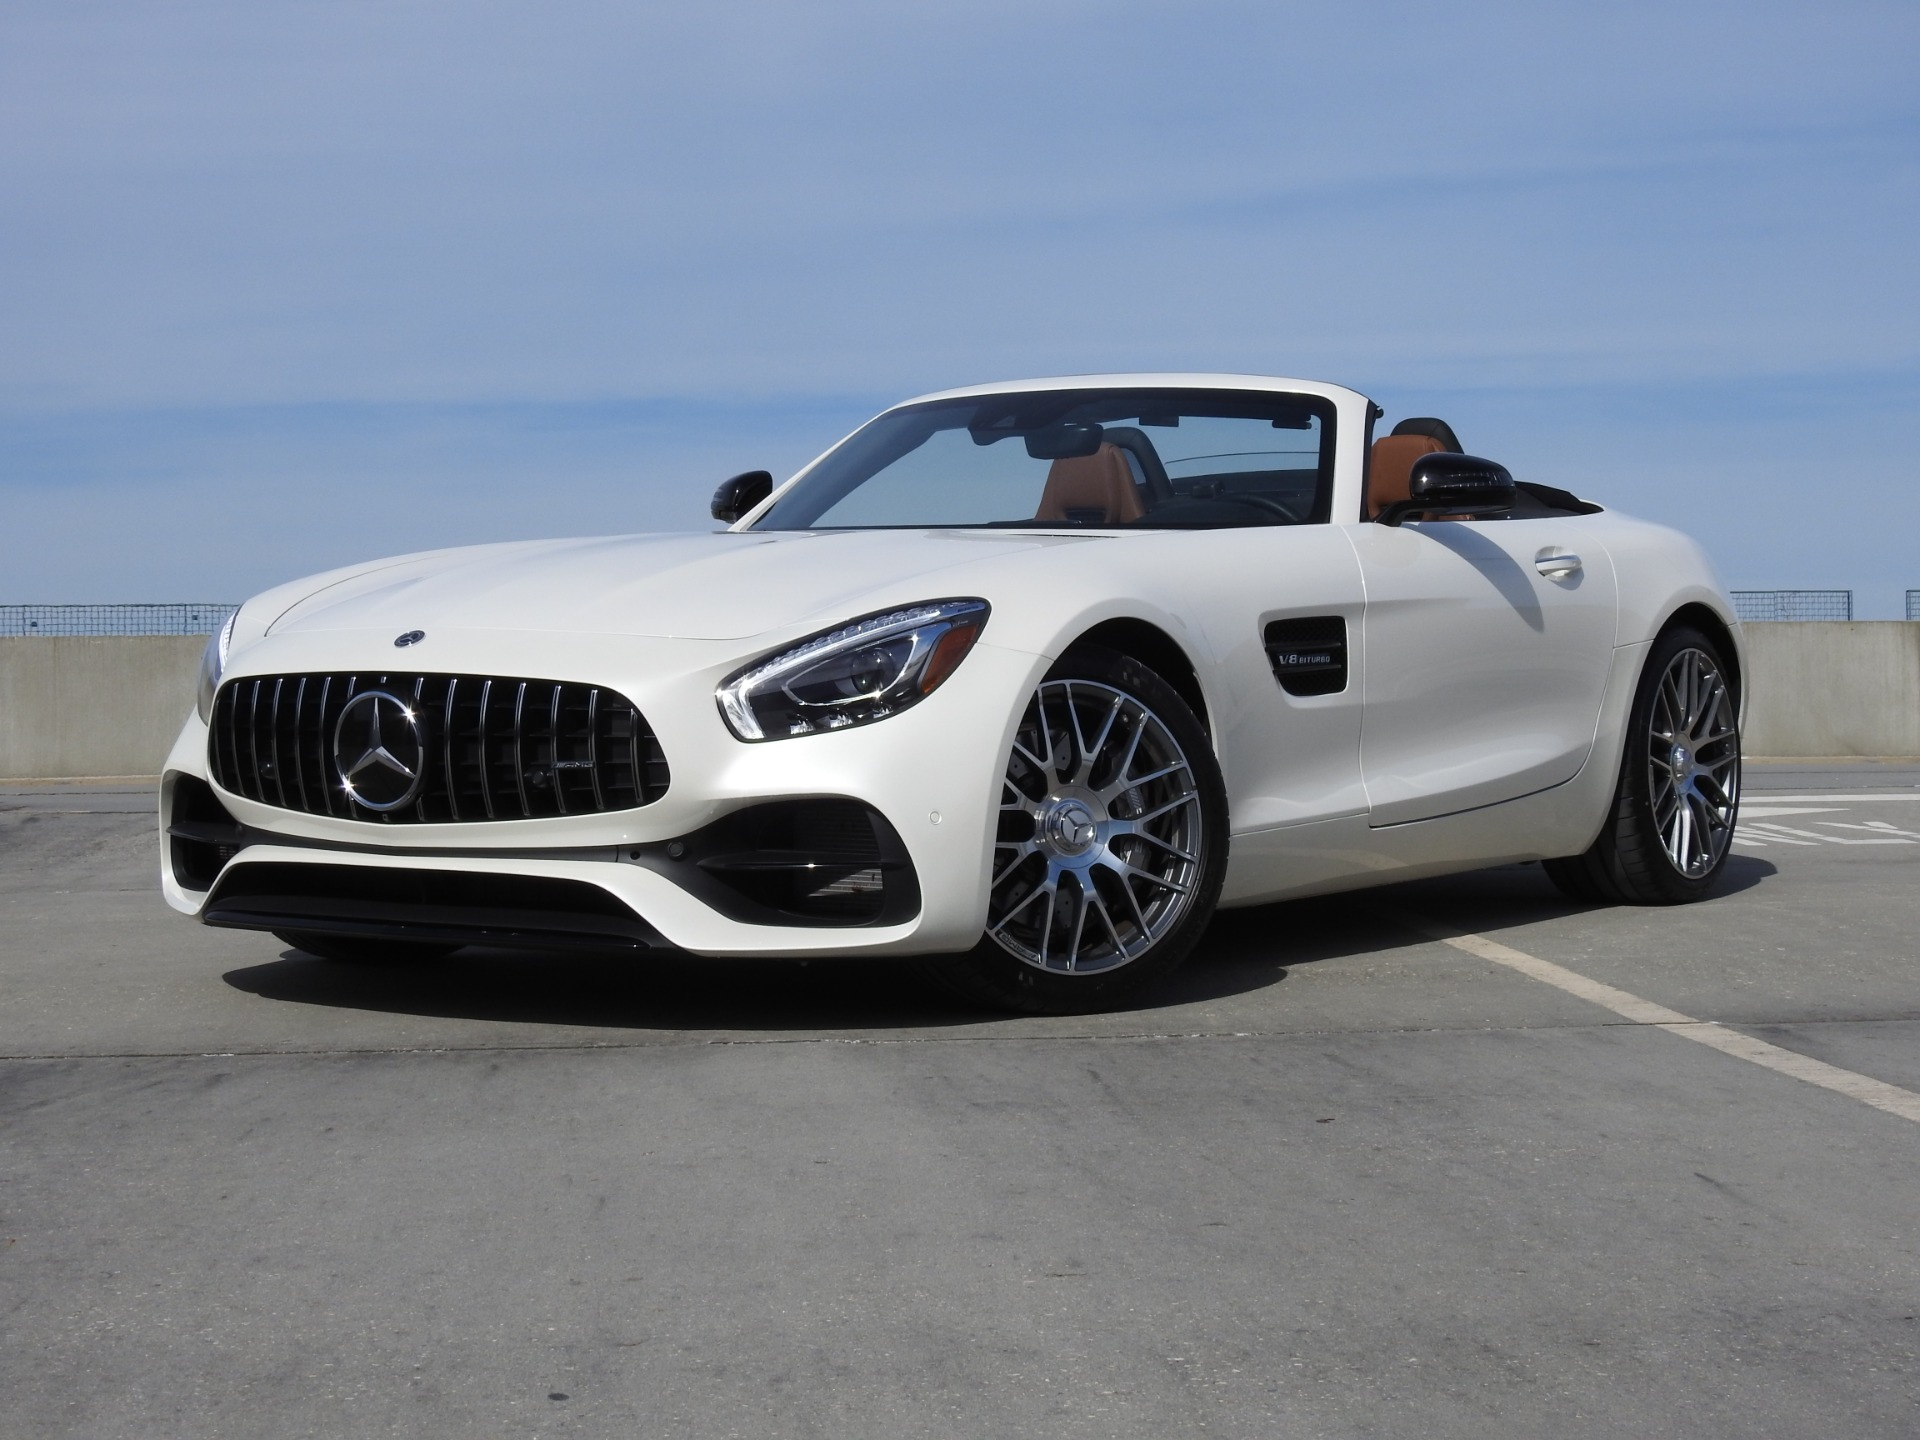 2018 Mercedes-Benz AMG GT Roadster Stock # JA019518 for sale near Jackson, MS | MS Mercedes-Benz ...